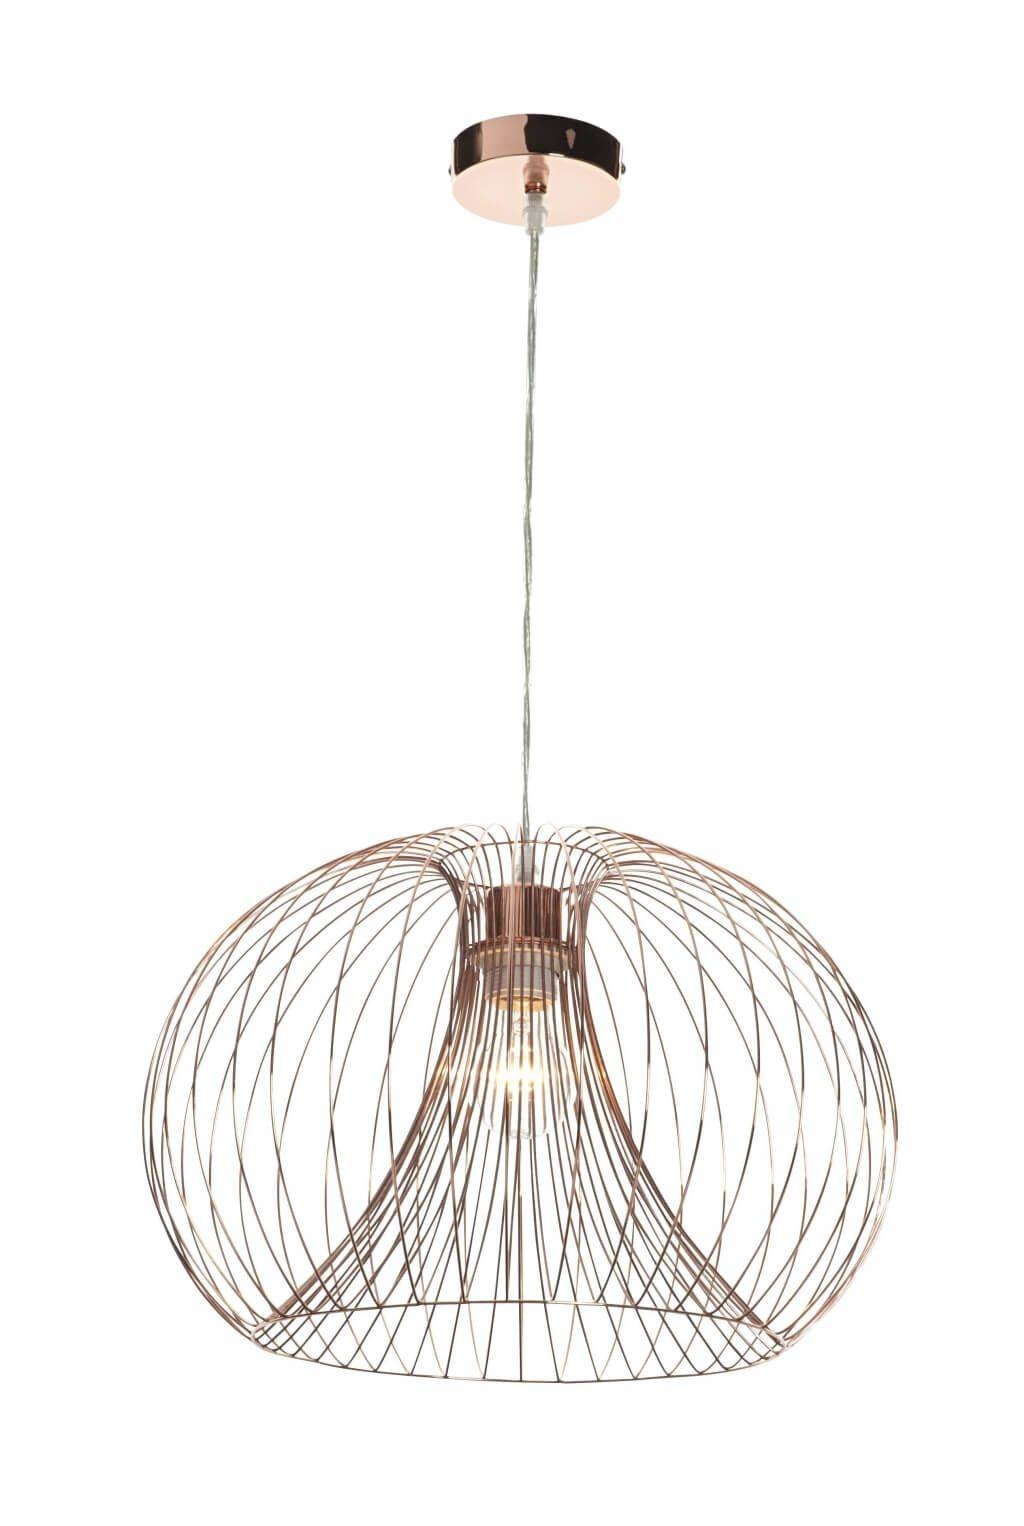 Lighting: Awesome Copper Pendant Light Fitting With Copper Wire Inside Corded Pendant Lights (View 7 of 15)